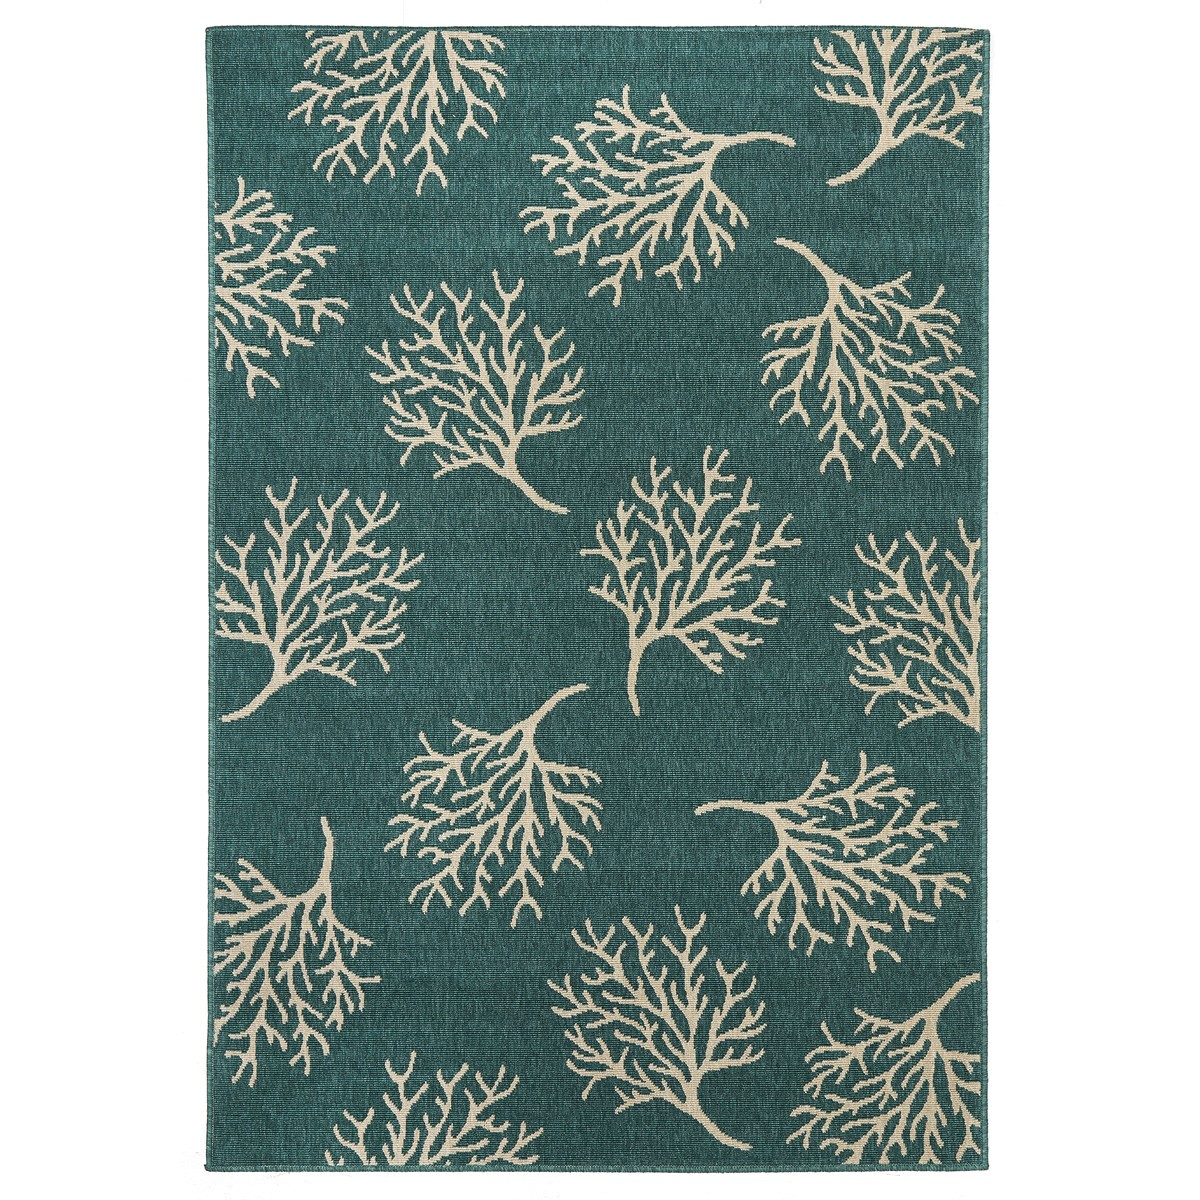 Alfresco Coral Reef Egyptian Made Outdoor Rug, 160x110cm, Turquoise